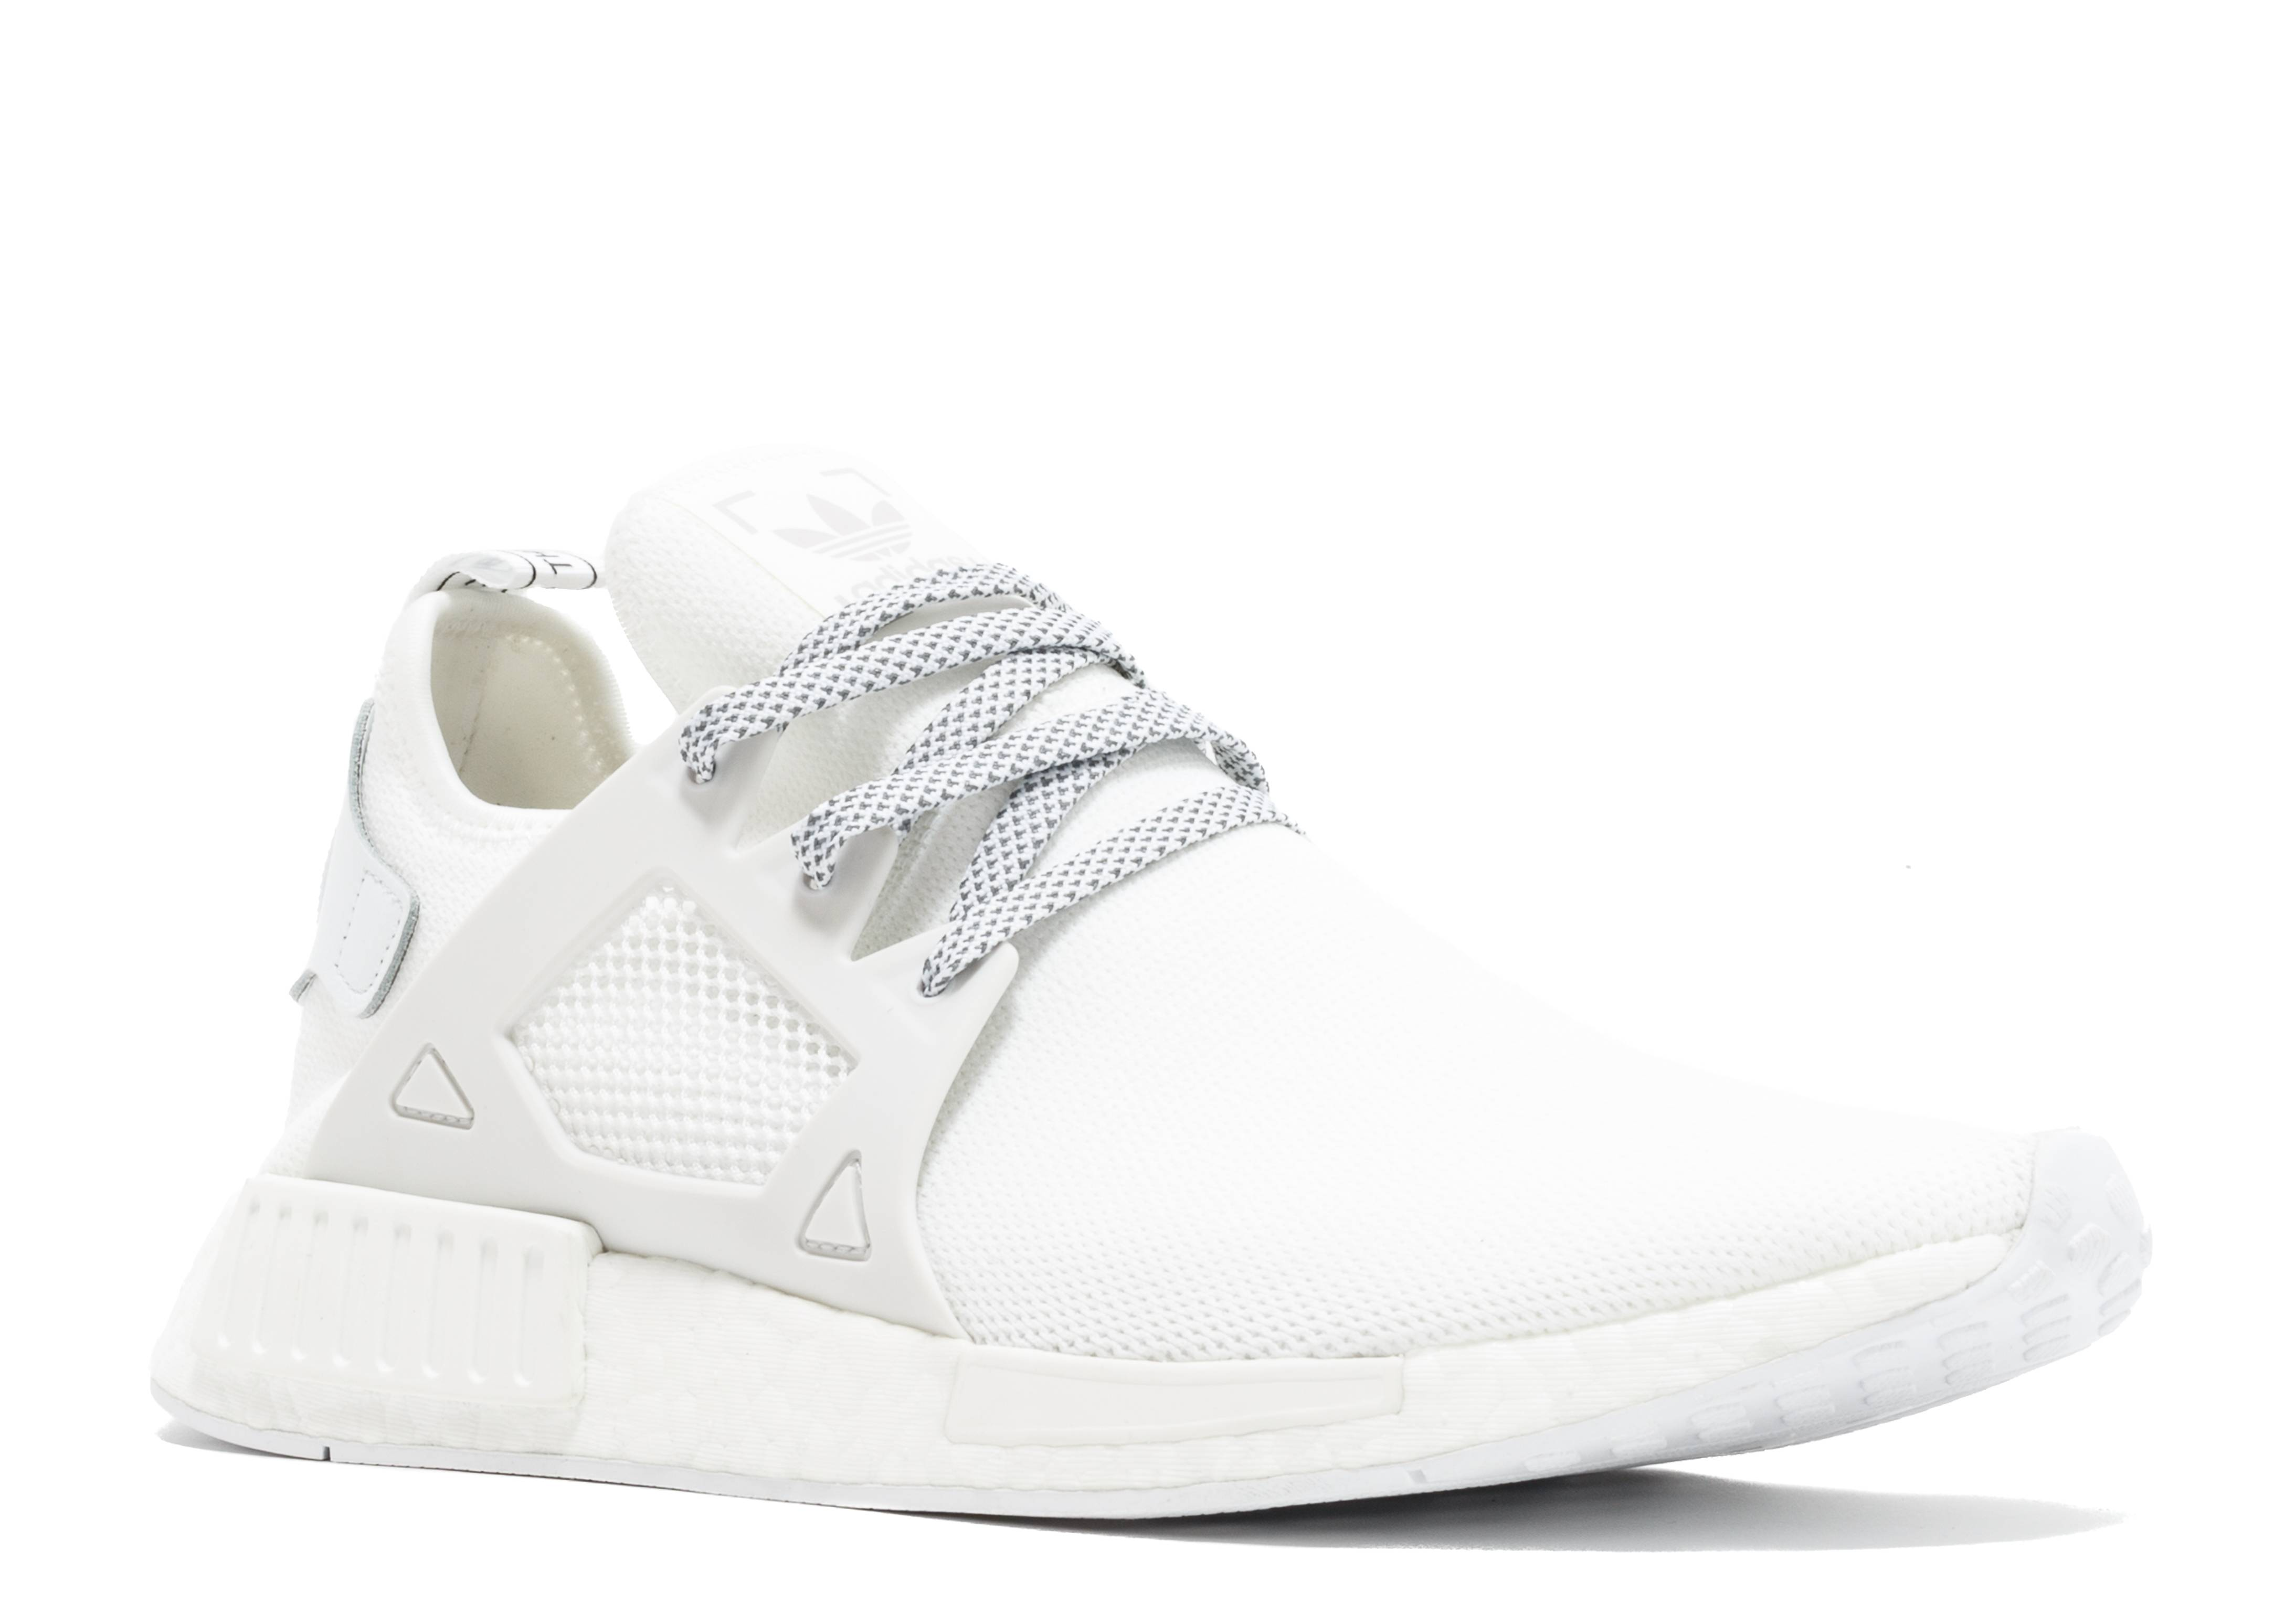 new styles 826df 8d5ff Nmd Xr1